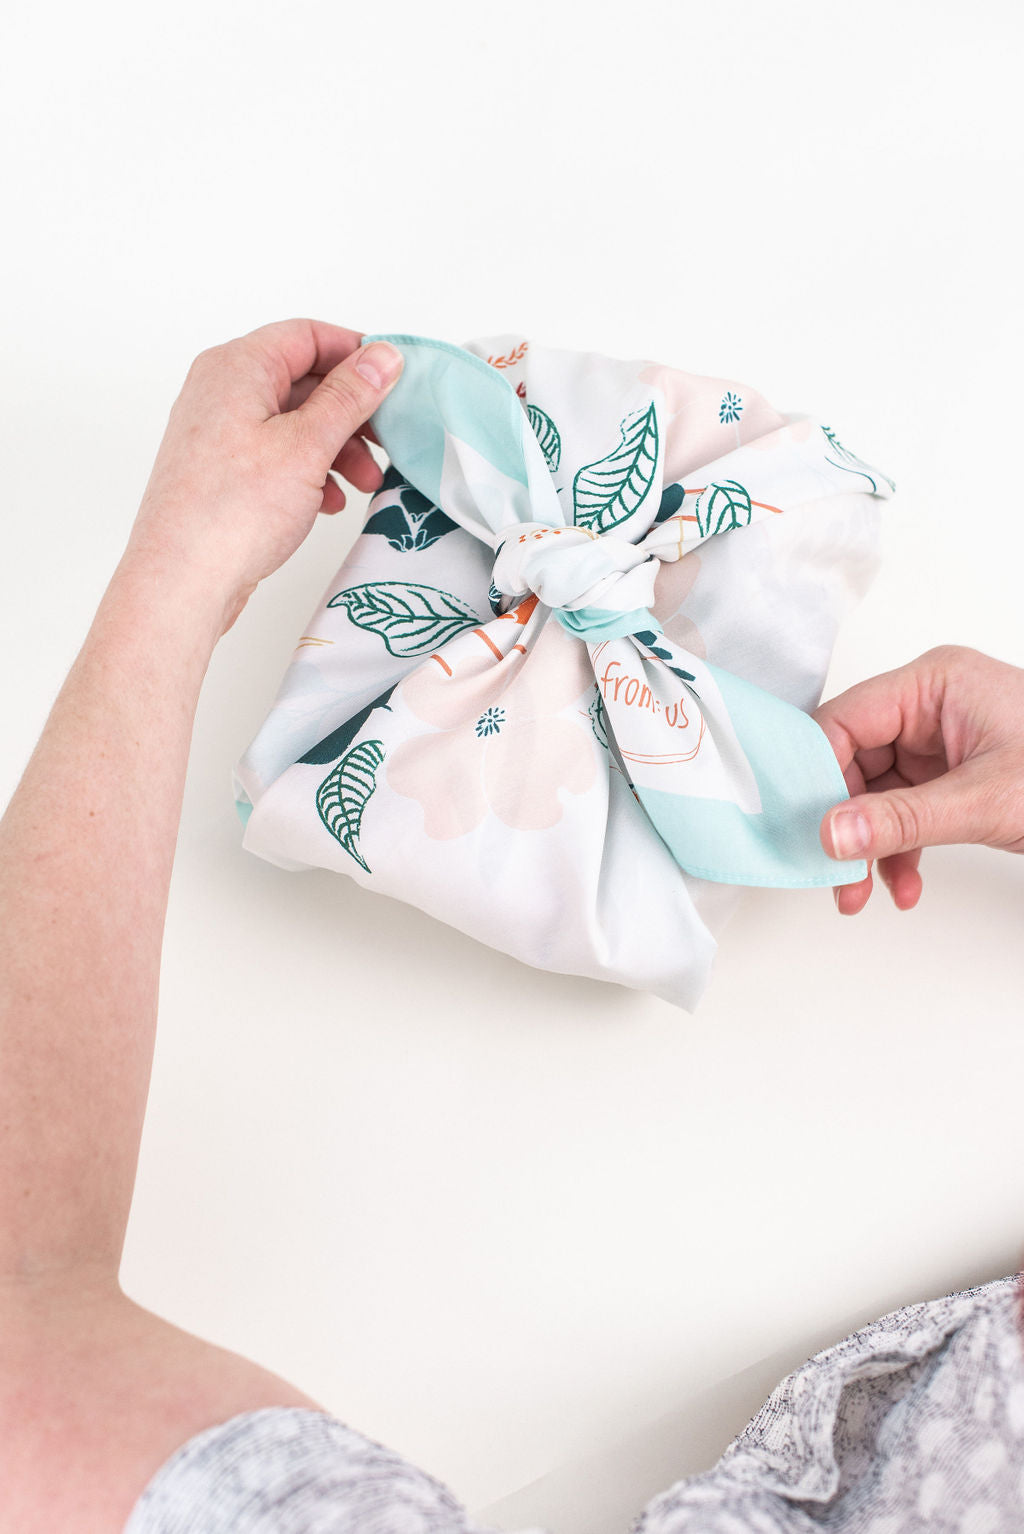 Custom Furoshiki wrap for From:Us gifting by Wrappr